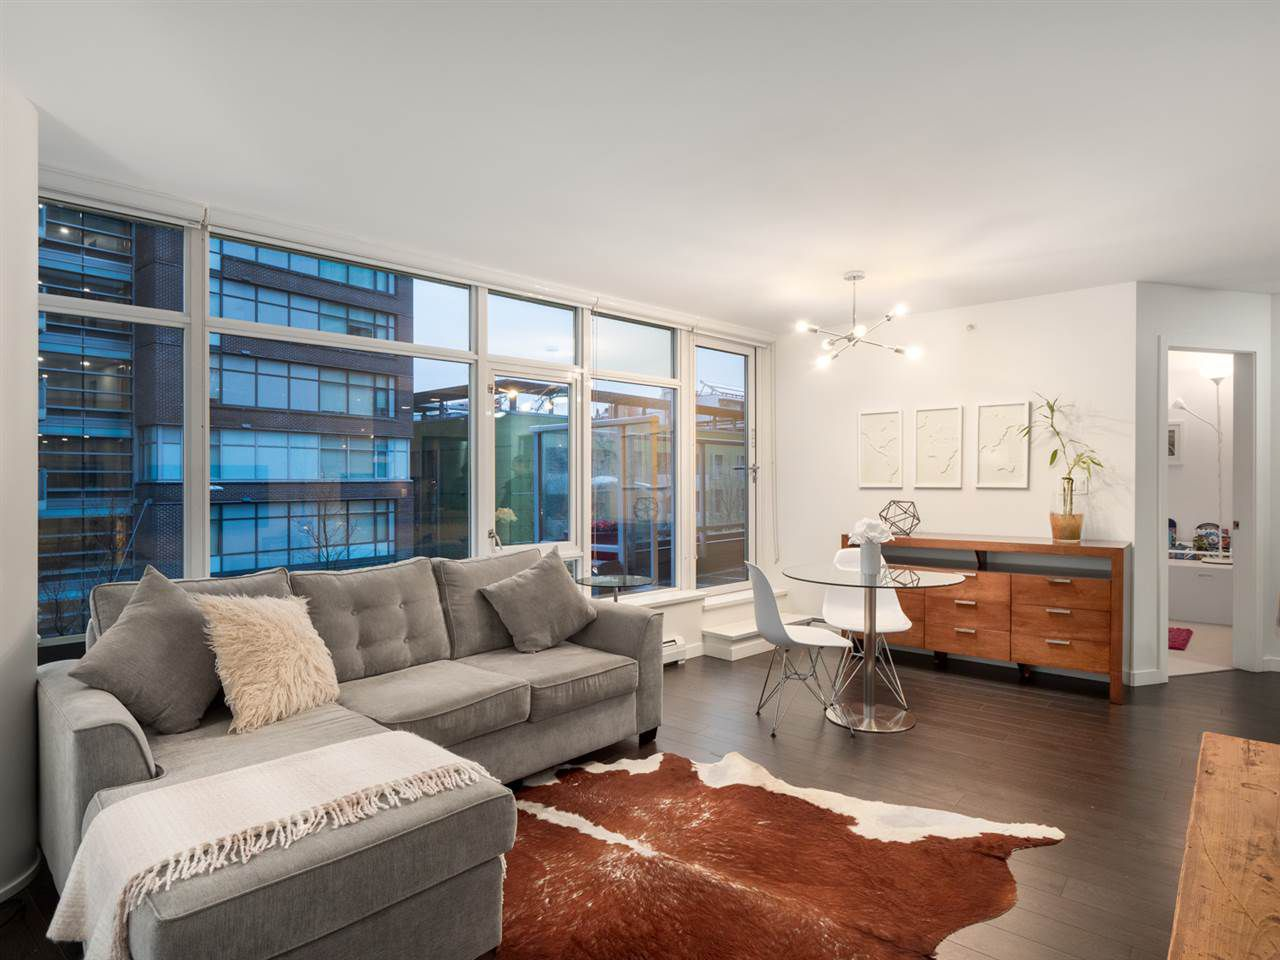 Main Photo: 306 1708 COLUMBIA STREET in Vancouver: False Creek Condo for sale (Vancouver West)  : MLS®# R2341537